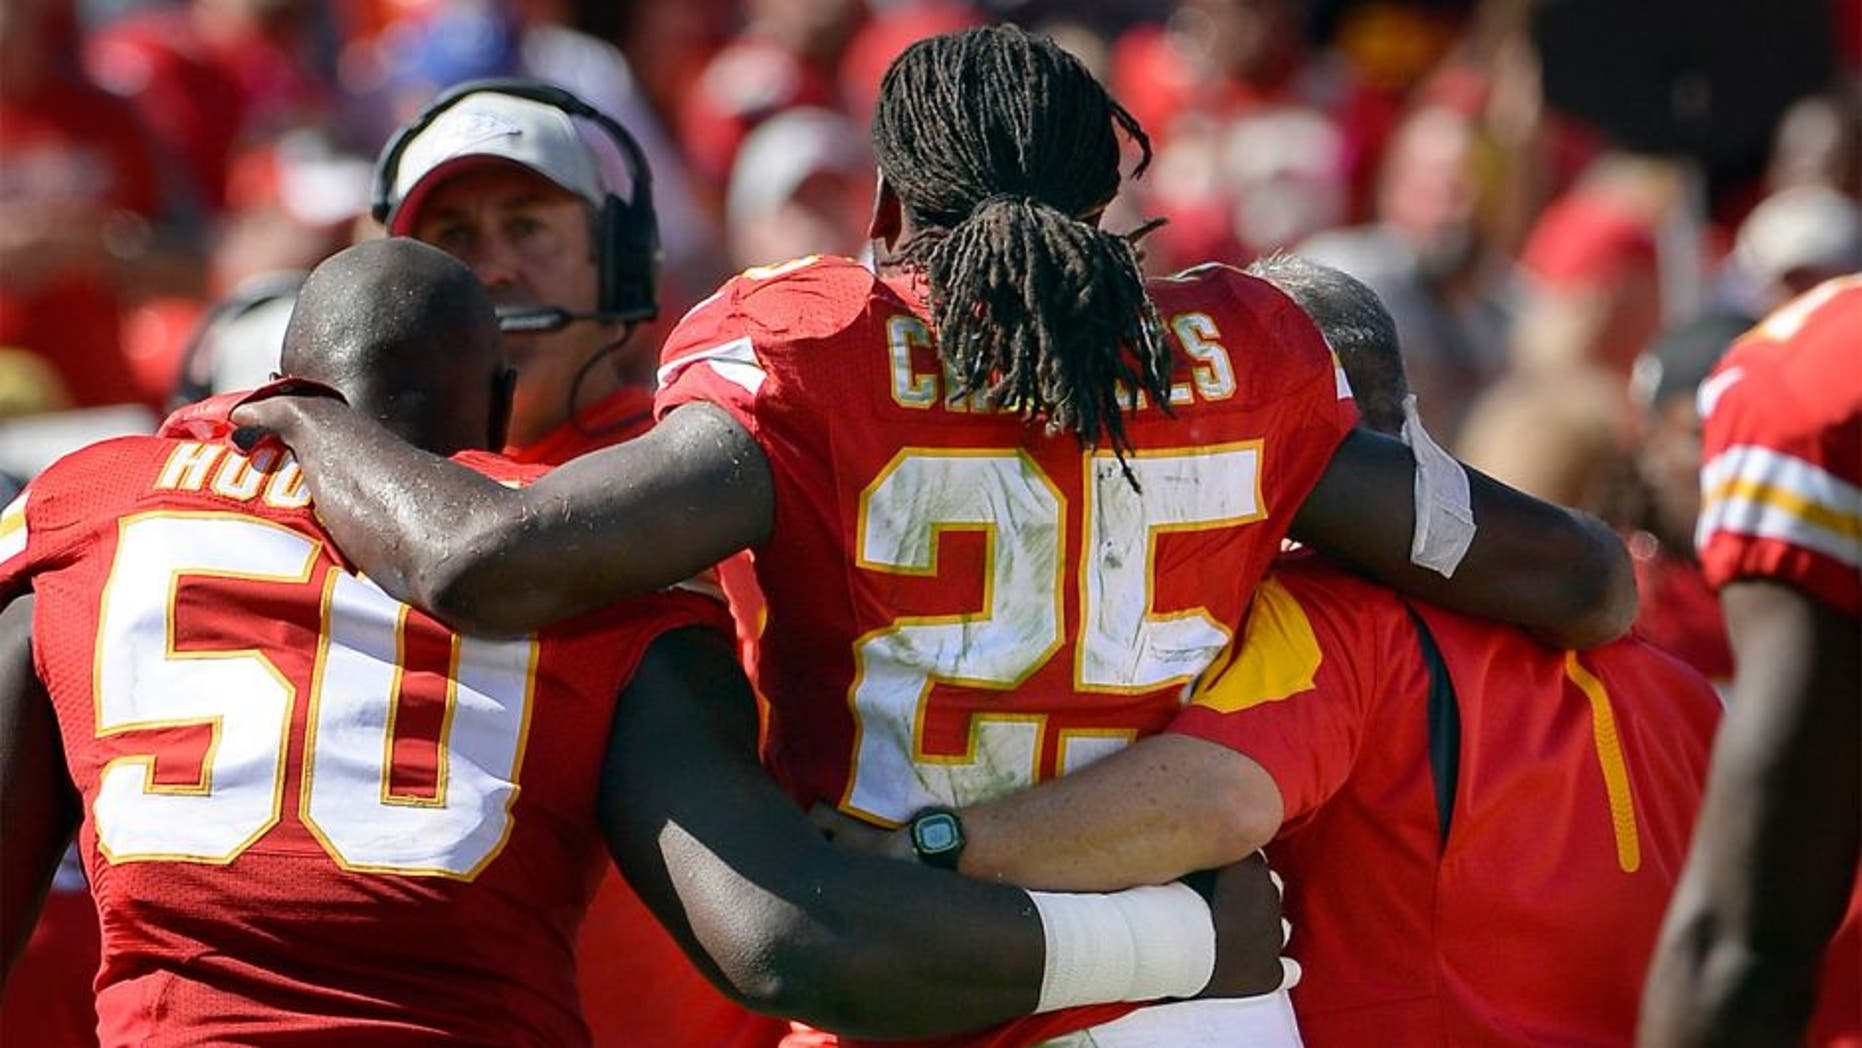 Kansas City Chiefs running back Jamaal Charles is helped off the field after getting injured during the third quarter on Sunday, Oct. 11, 2015, at Arrowhead Stadium in Kansas City, Mo. (Keith Myers/Kansas City Star/TNS via Getty Images)